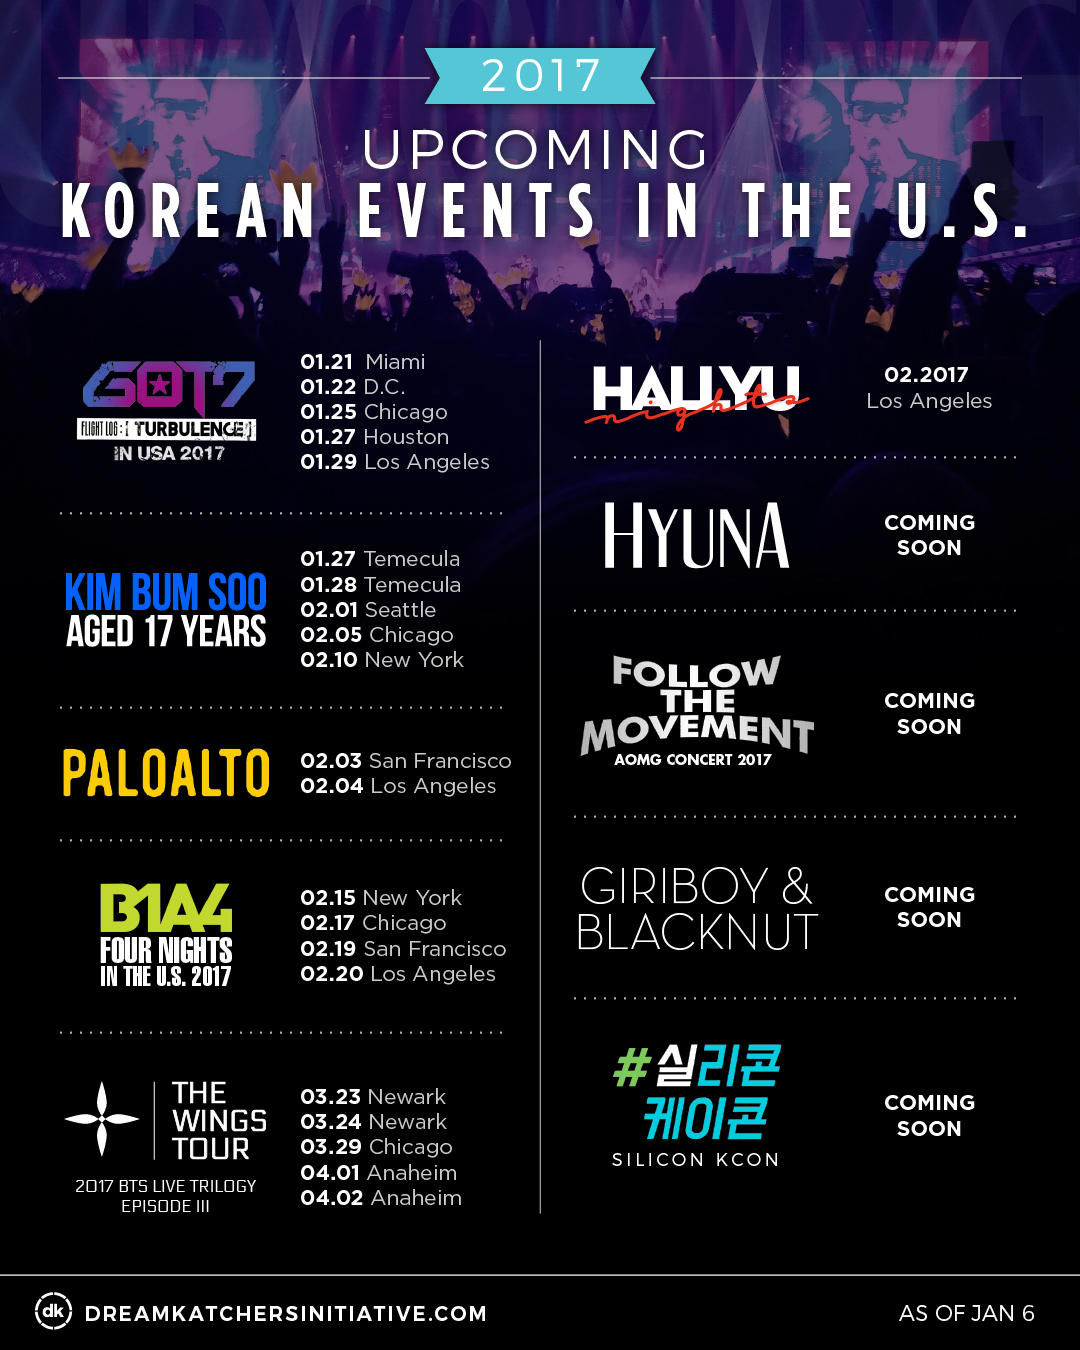 Kpop concerts in chicago